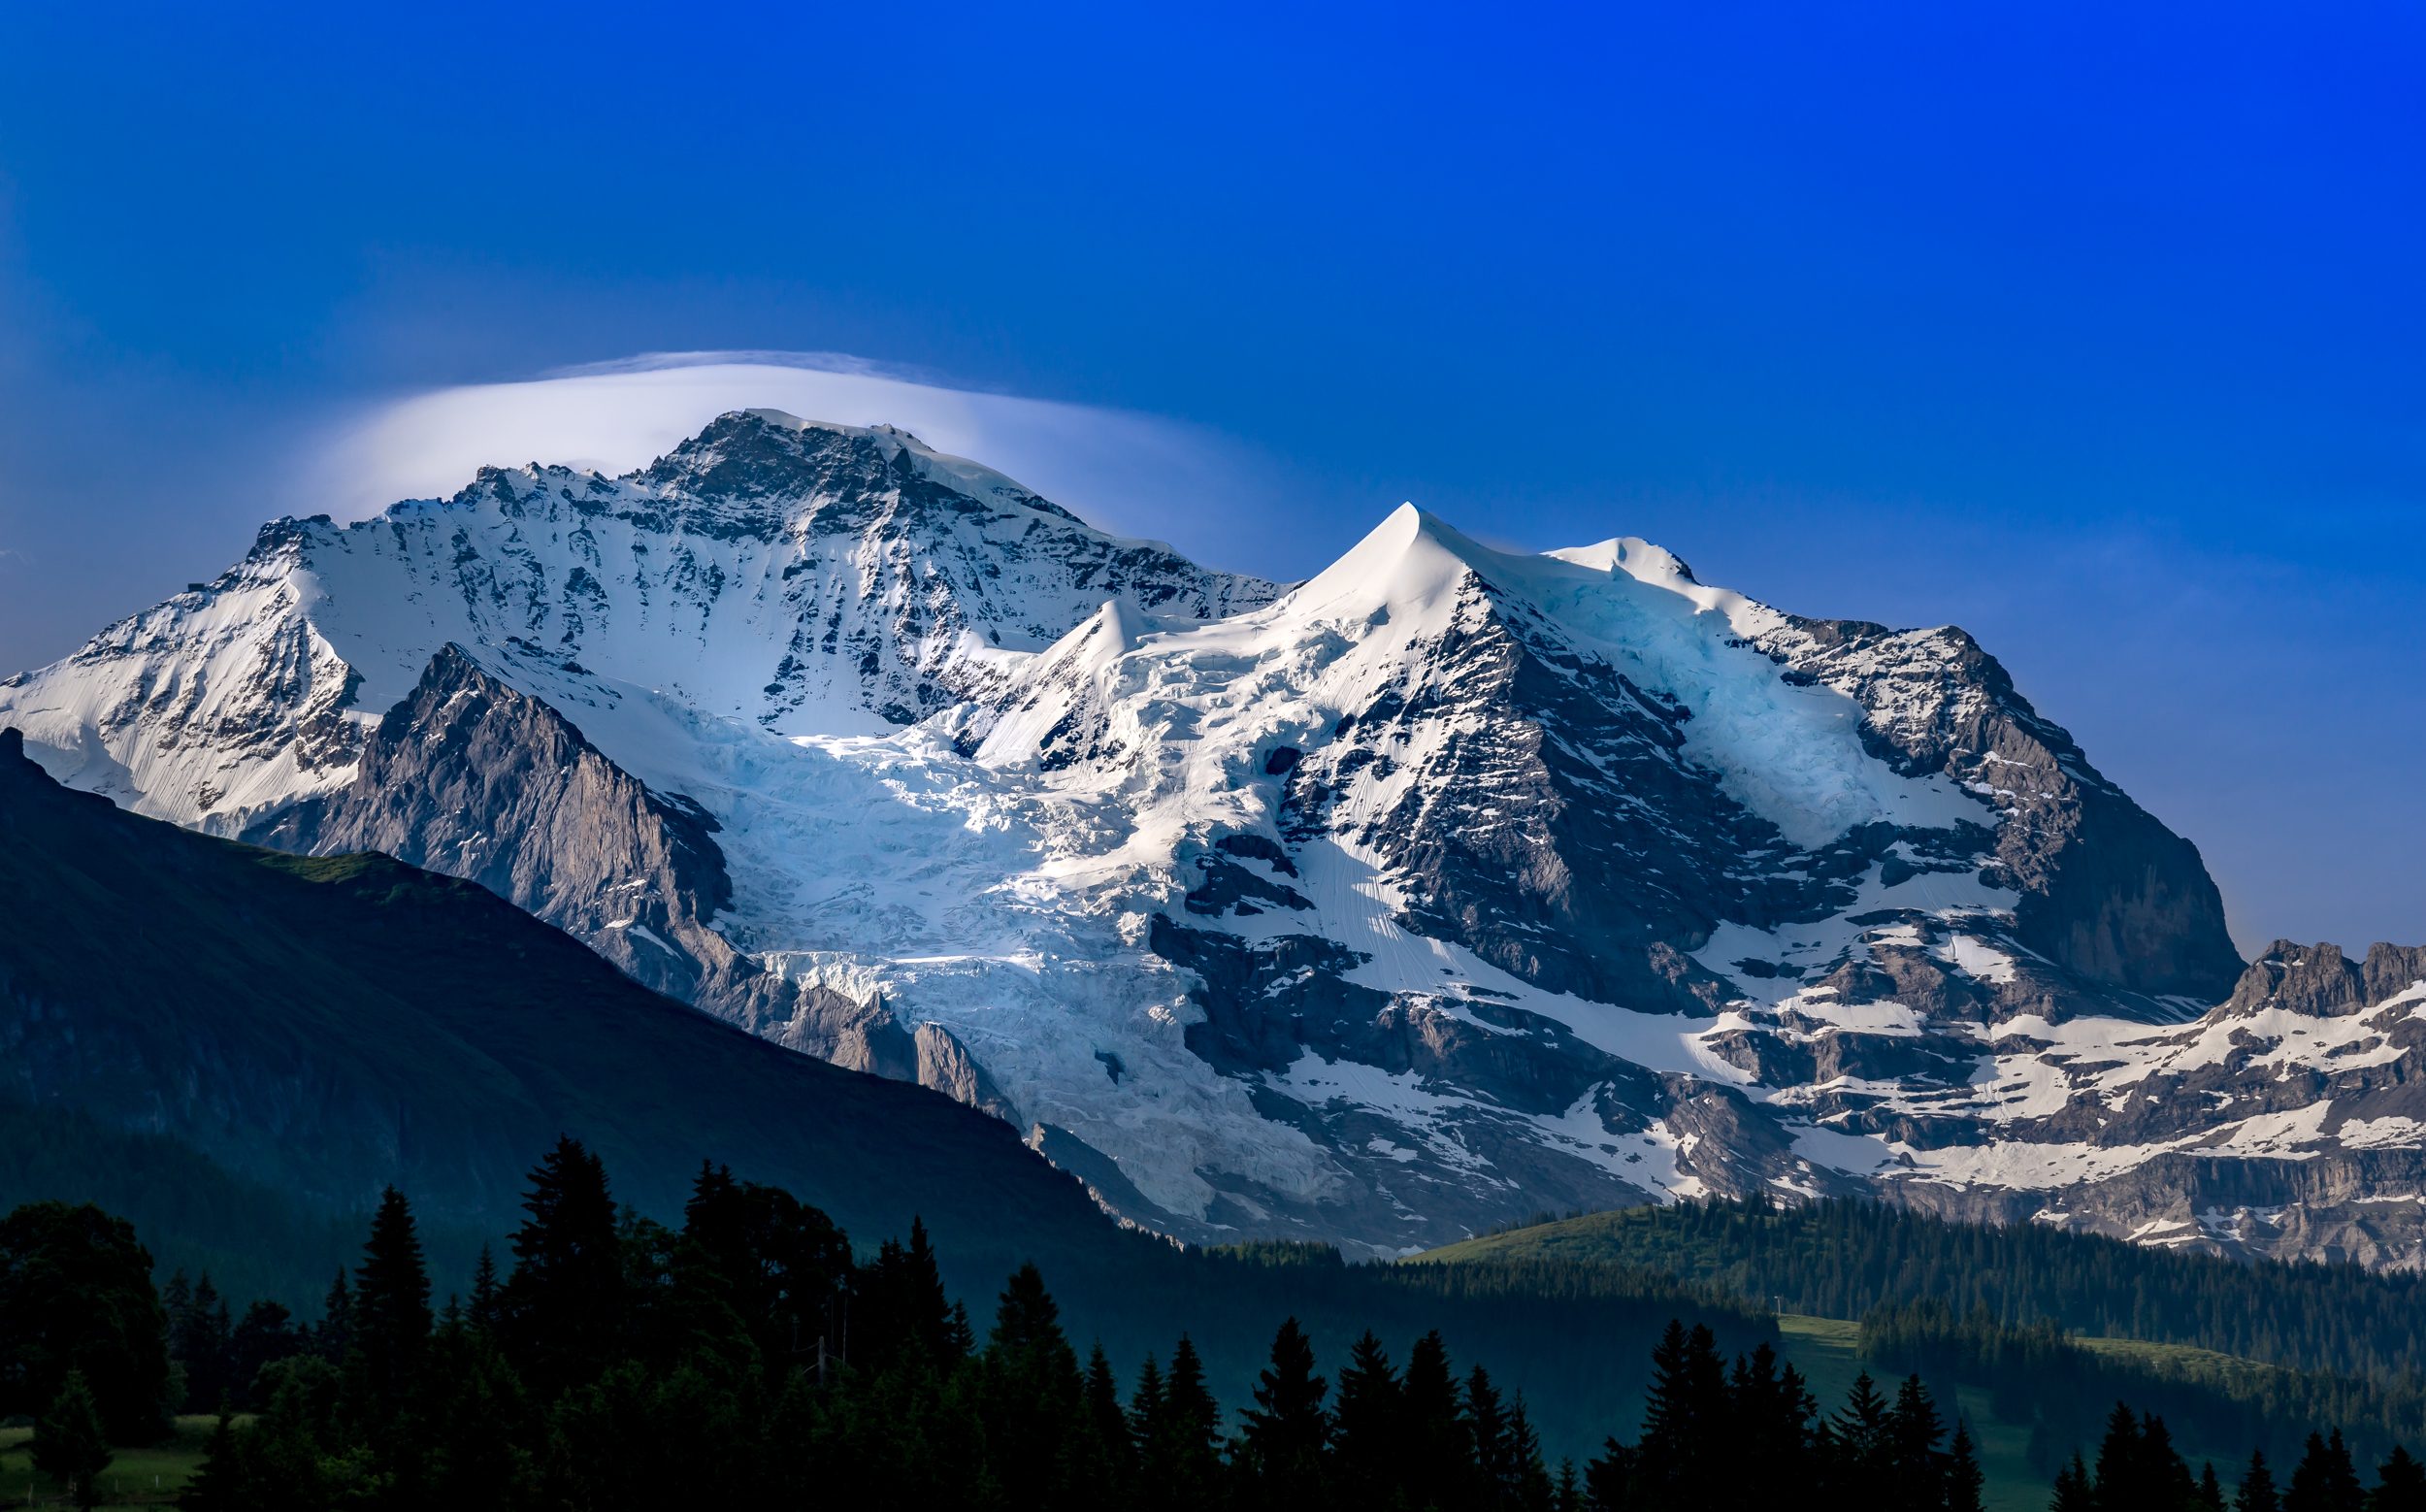 Jungfrau Region of Switzerland